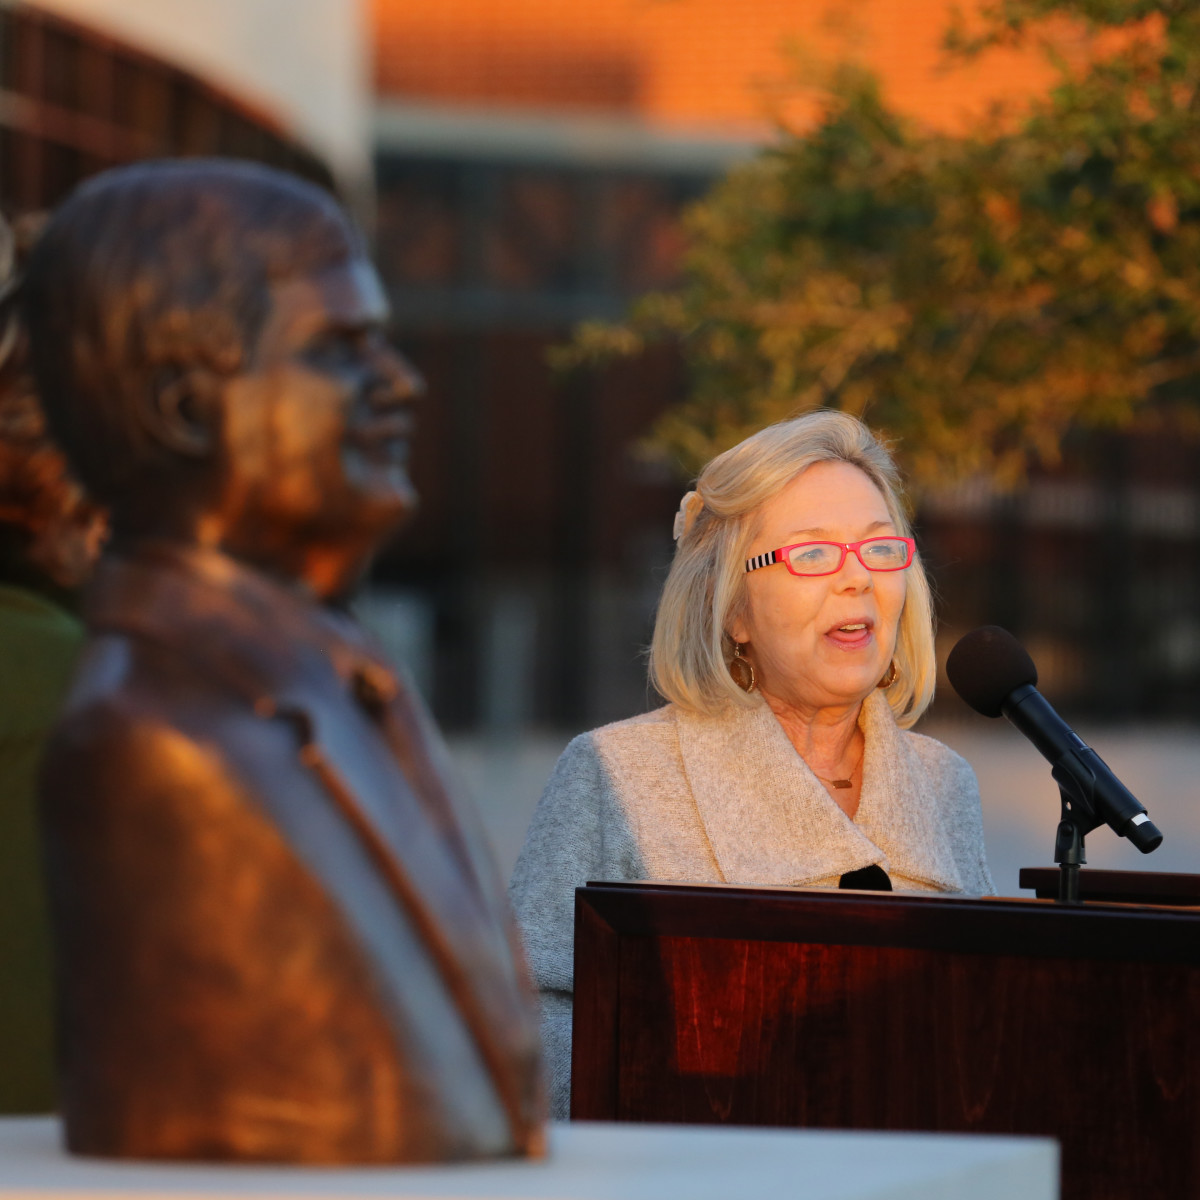 News, Shelby, John Eddie Williams Statue event, Nov. 2015, Sharon Connally Ammann